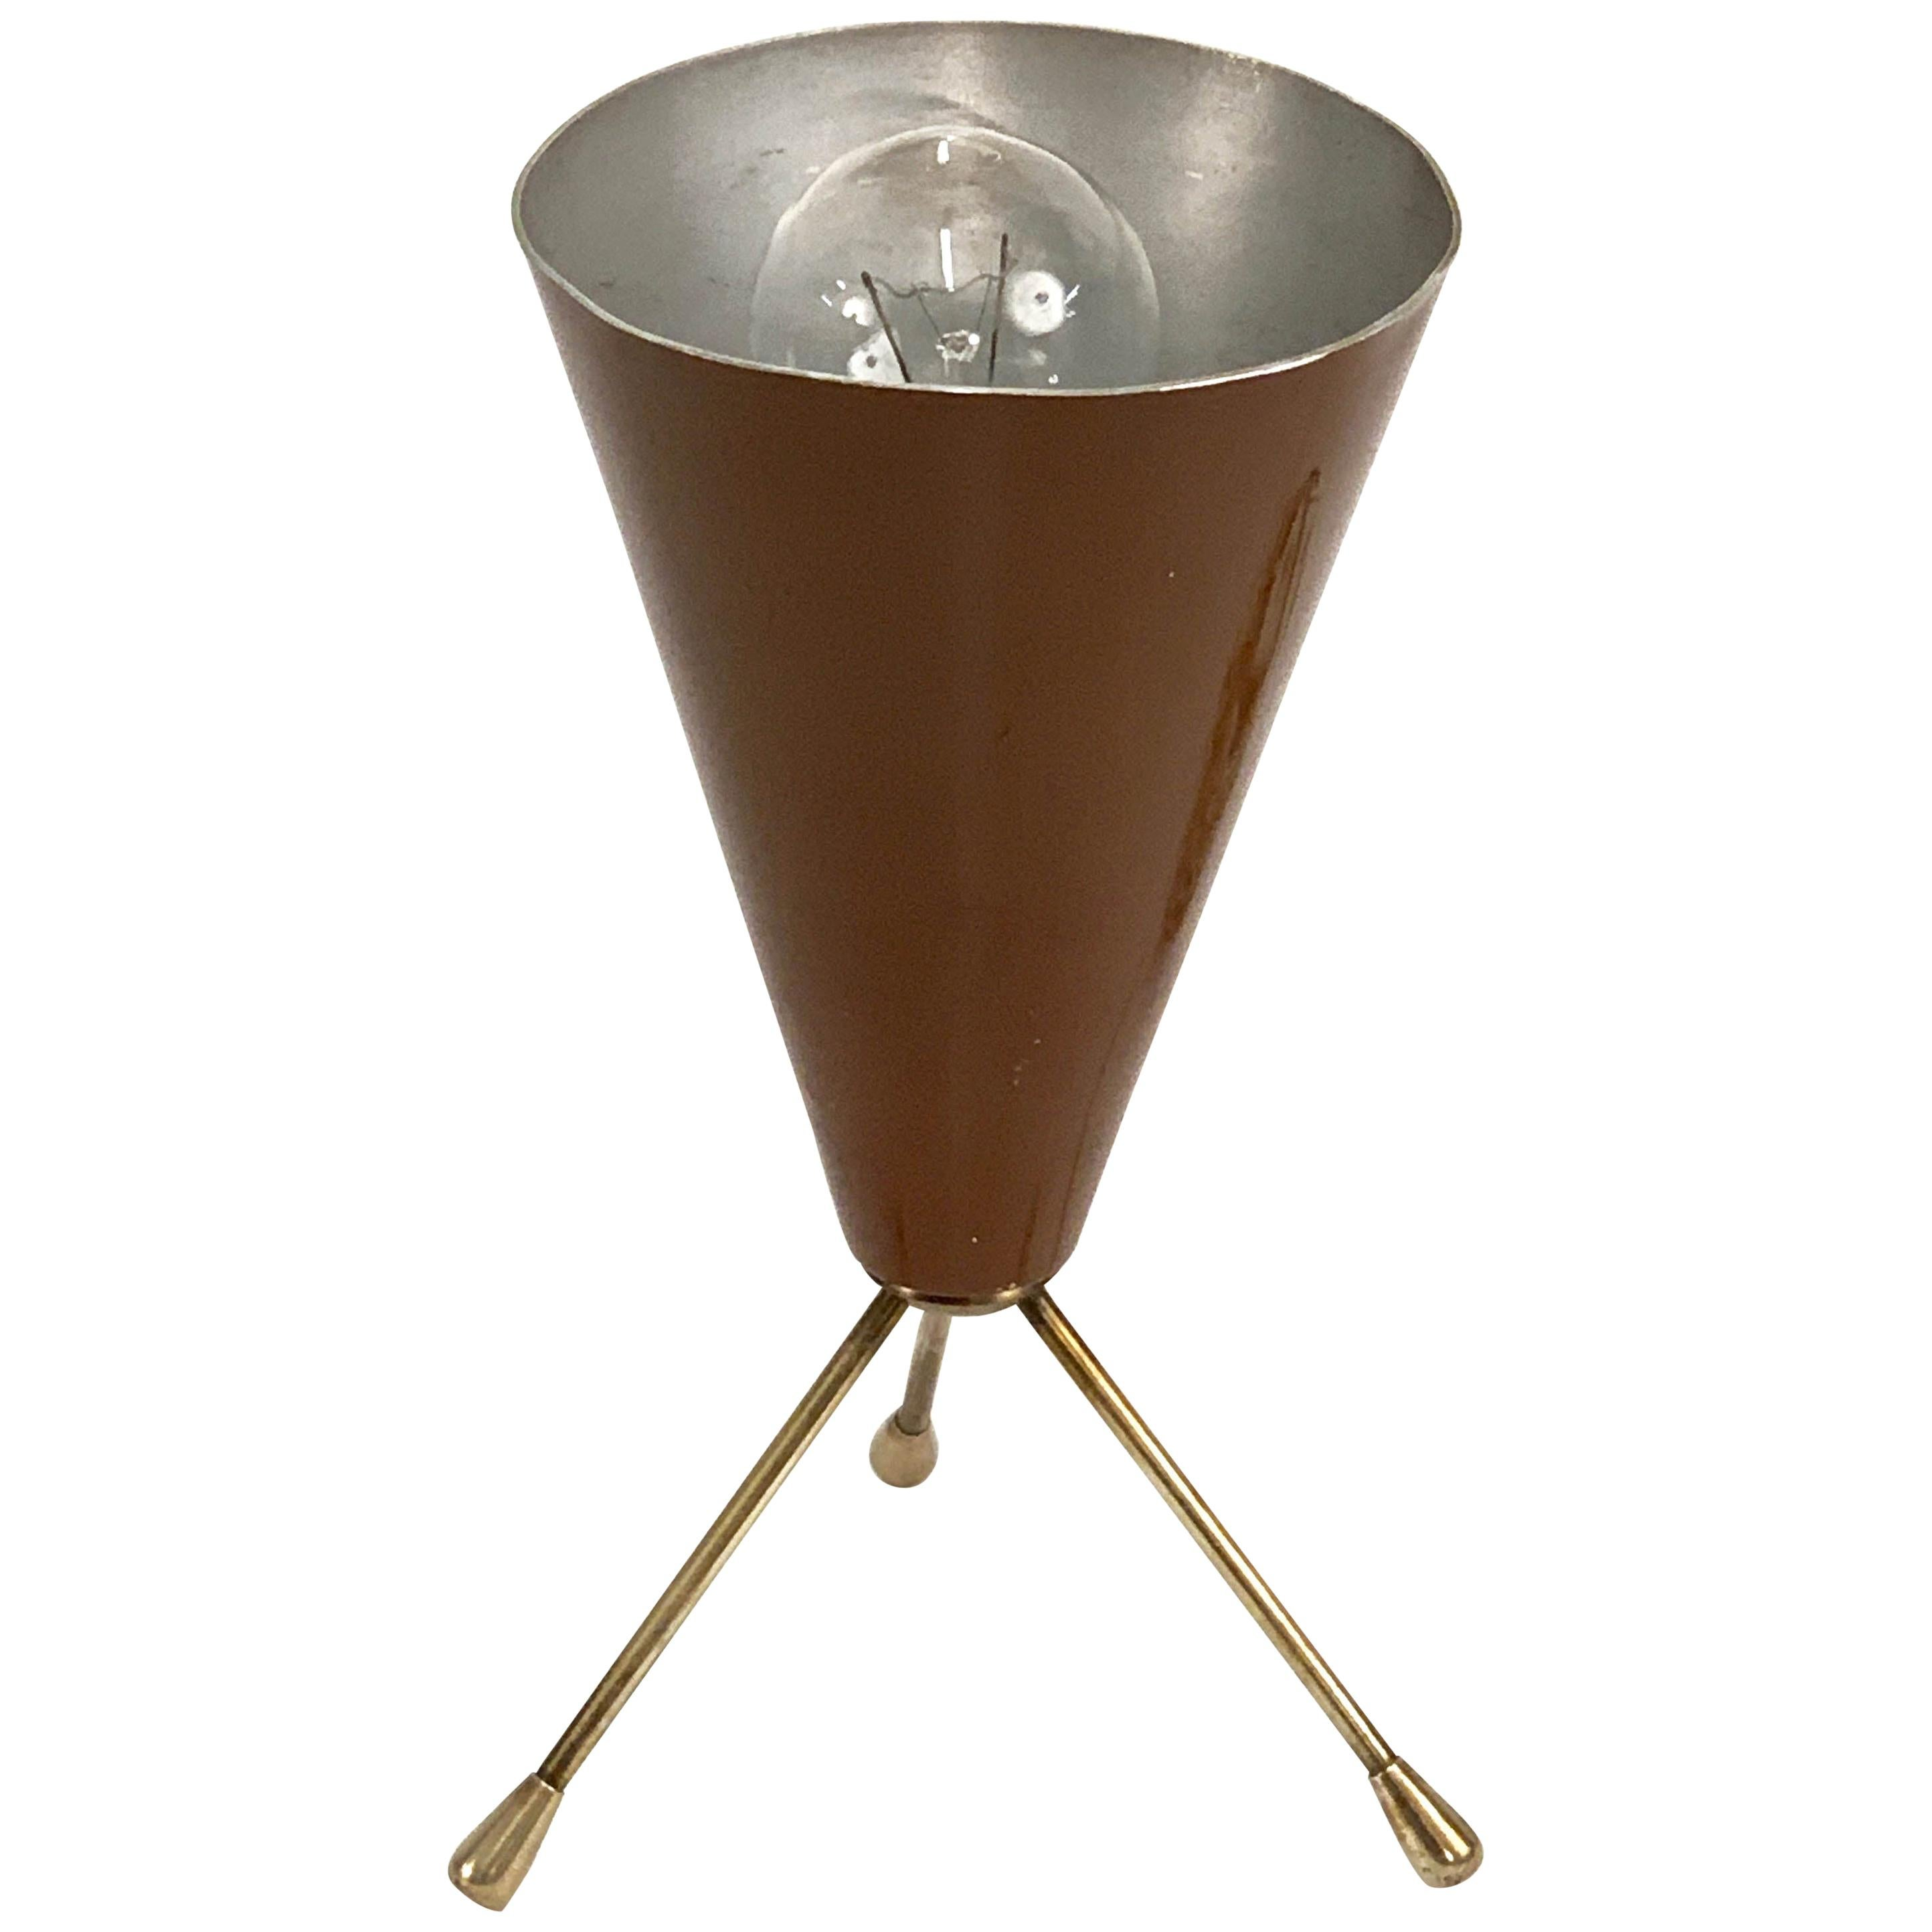 Midcentury Brown and Brass Lacquered Metal Conical Tripod Table Lamp Italy 1950s